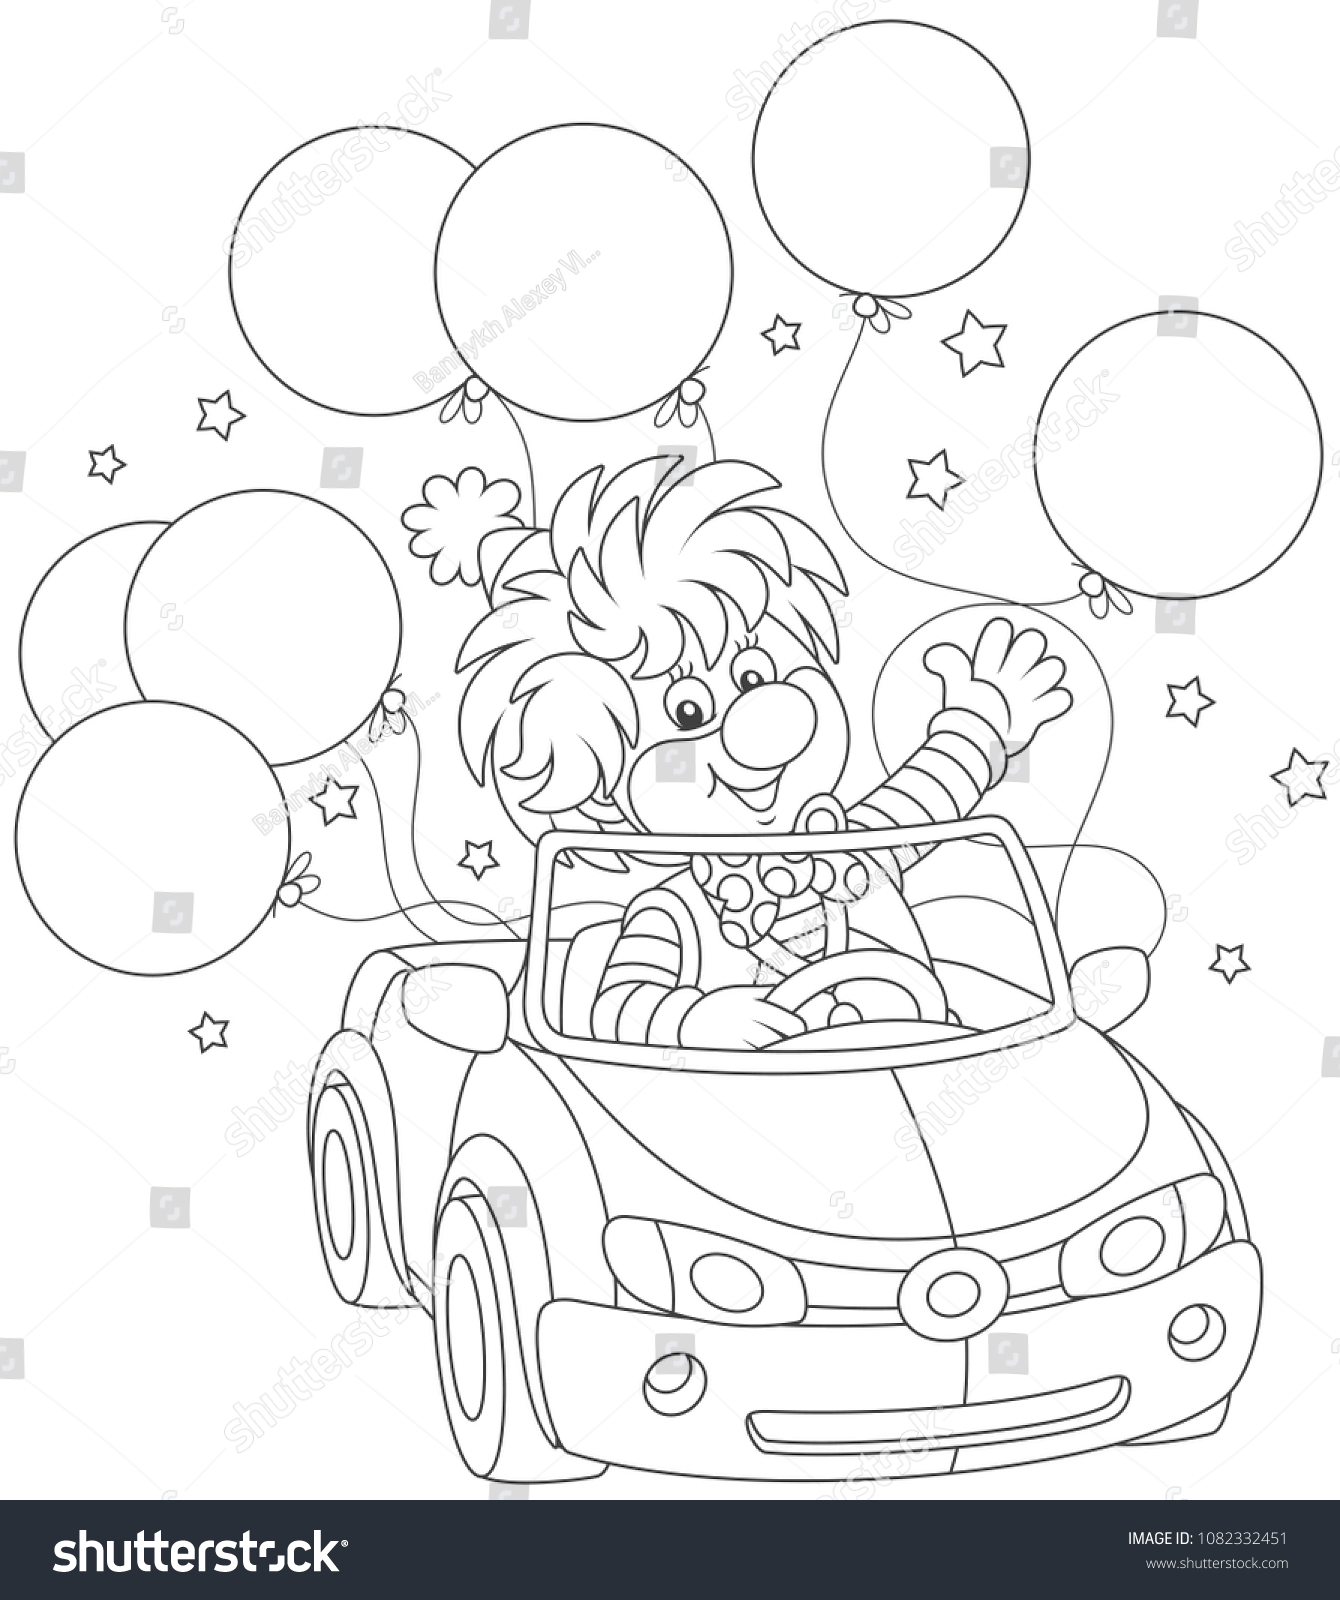 Funny Circus Clown Driving His Car Stock Vector (Royalty Free ...